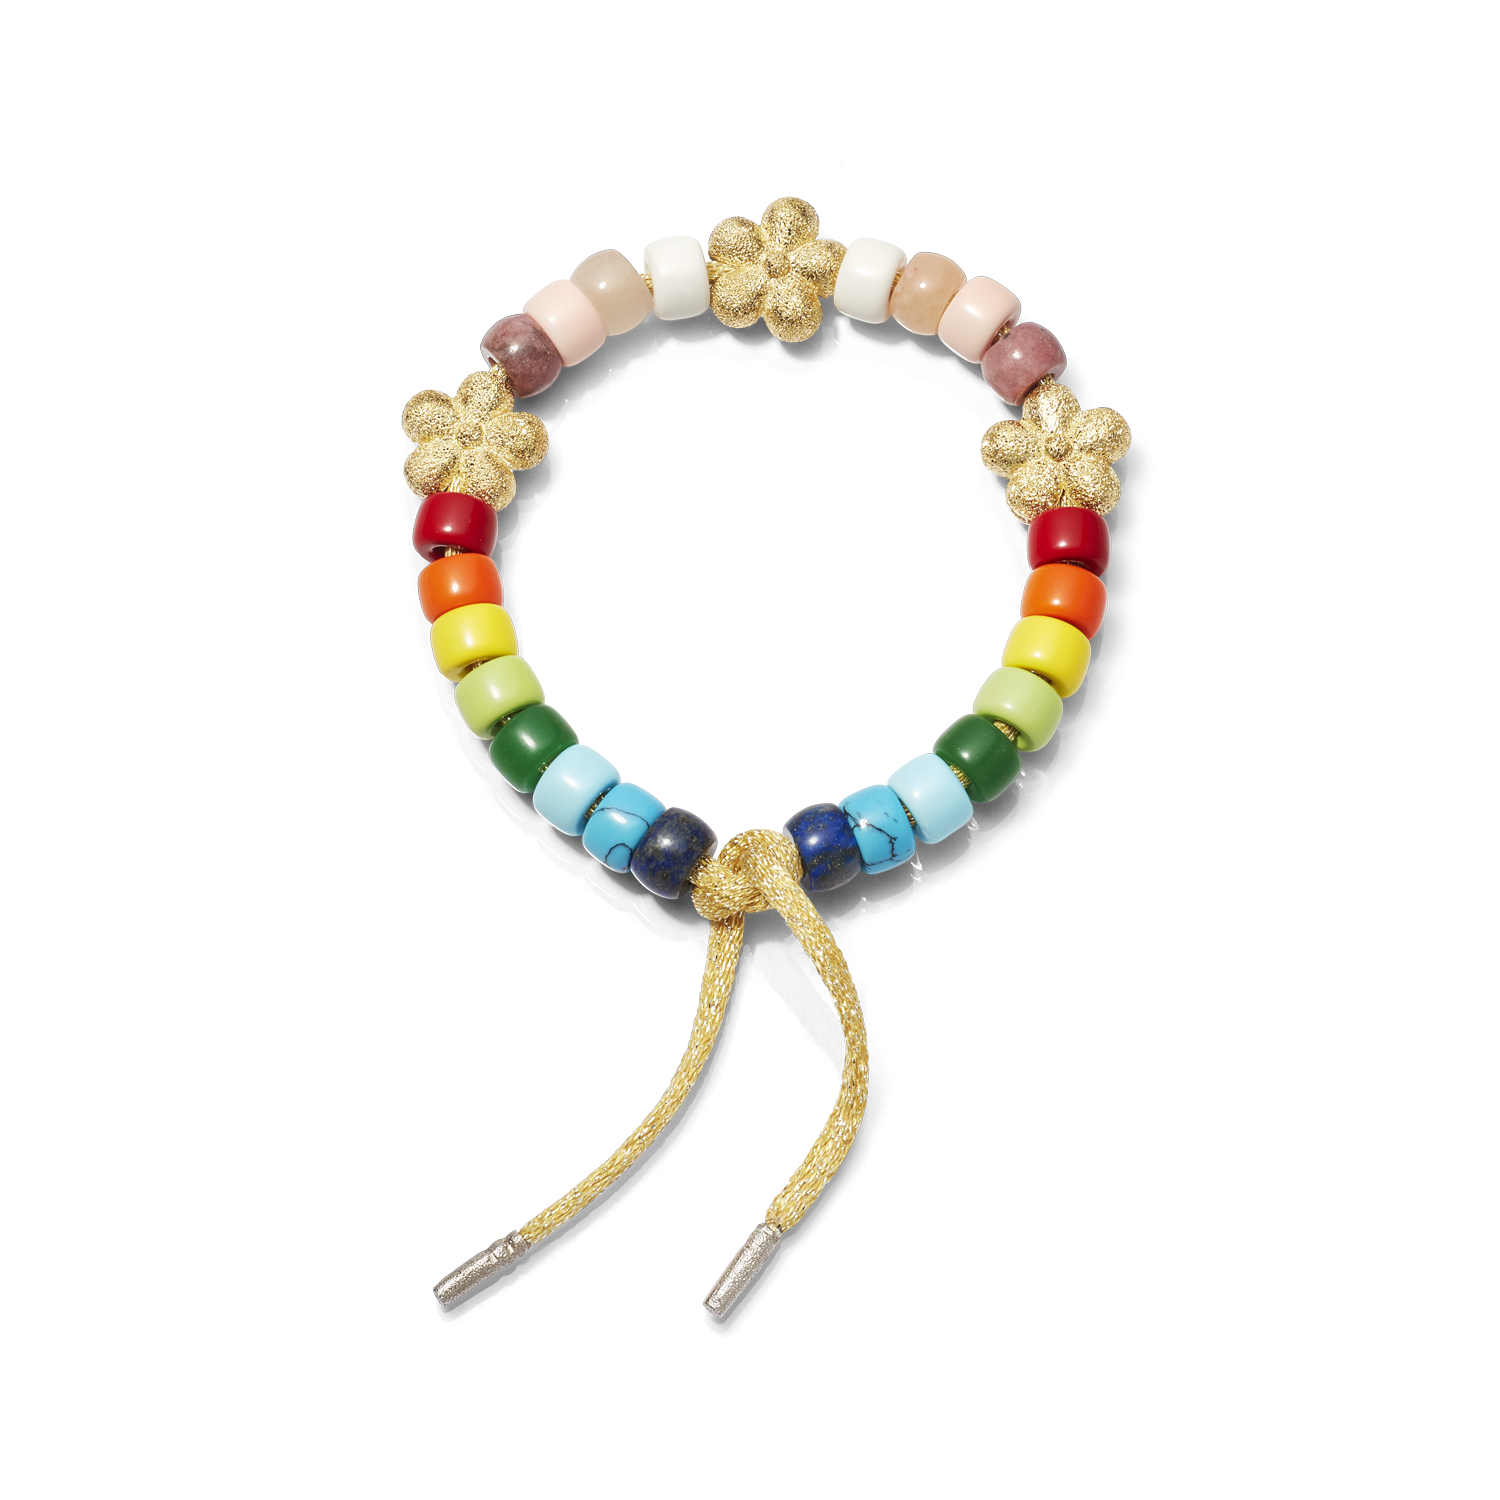 Carolina Bucci Forte Beads Rainbow Bracelet with Flower Beads